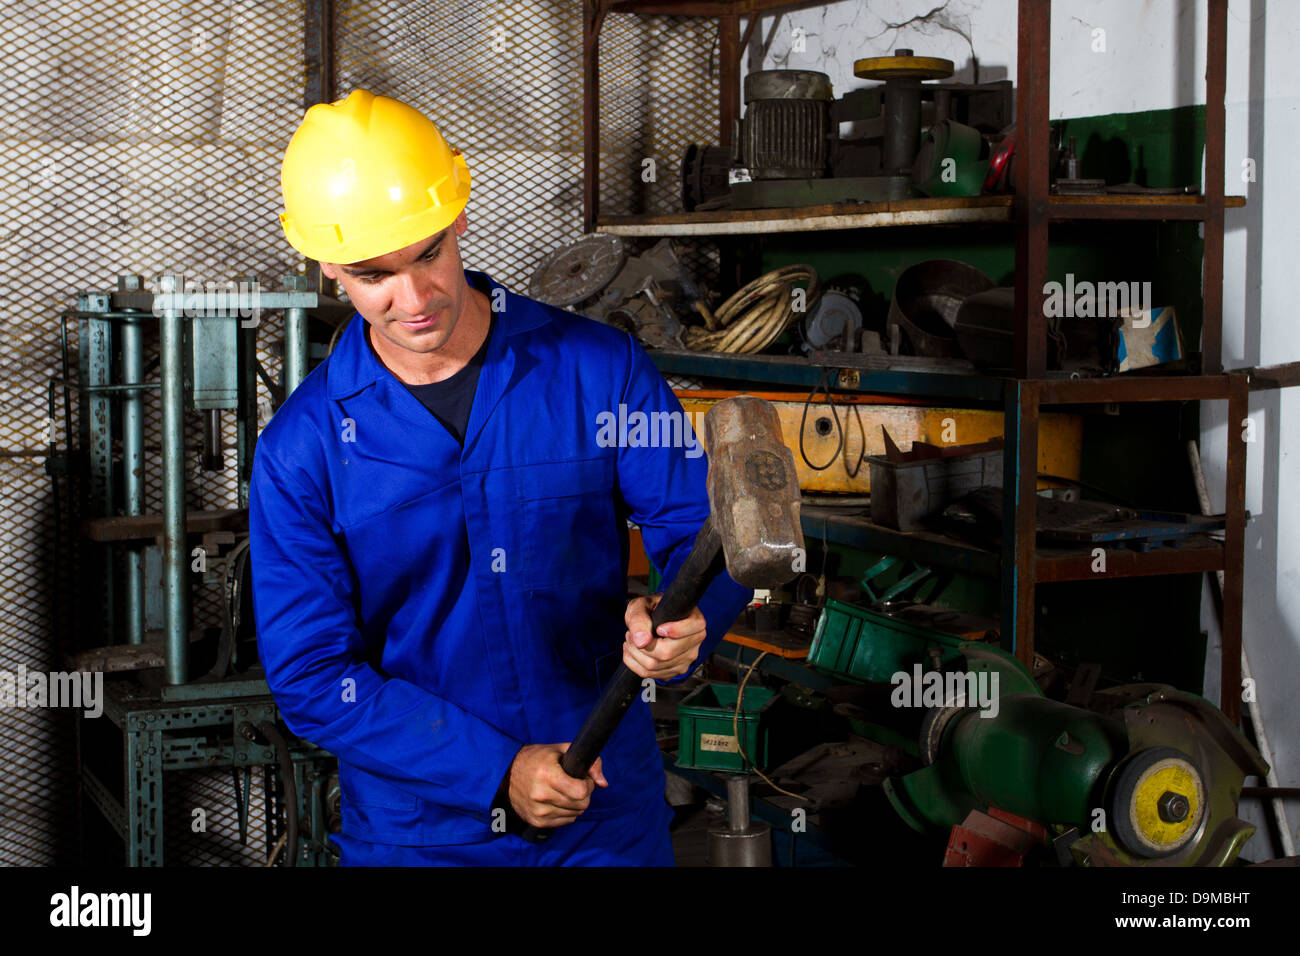 manual worker using big hammer in workshop - Stock Image